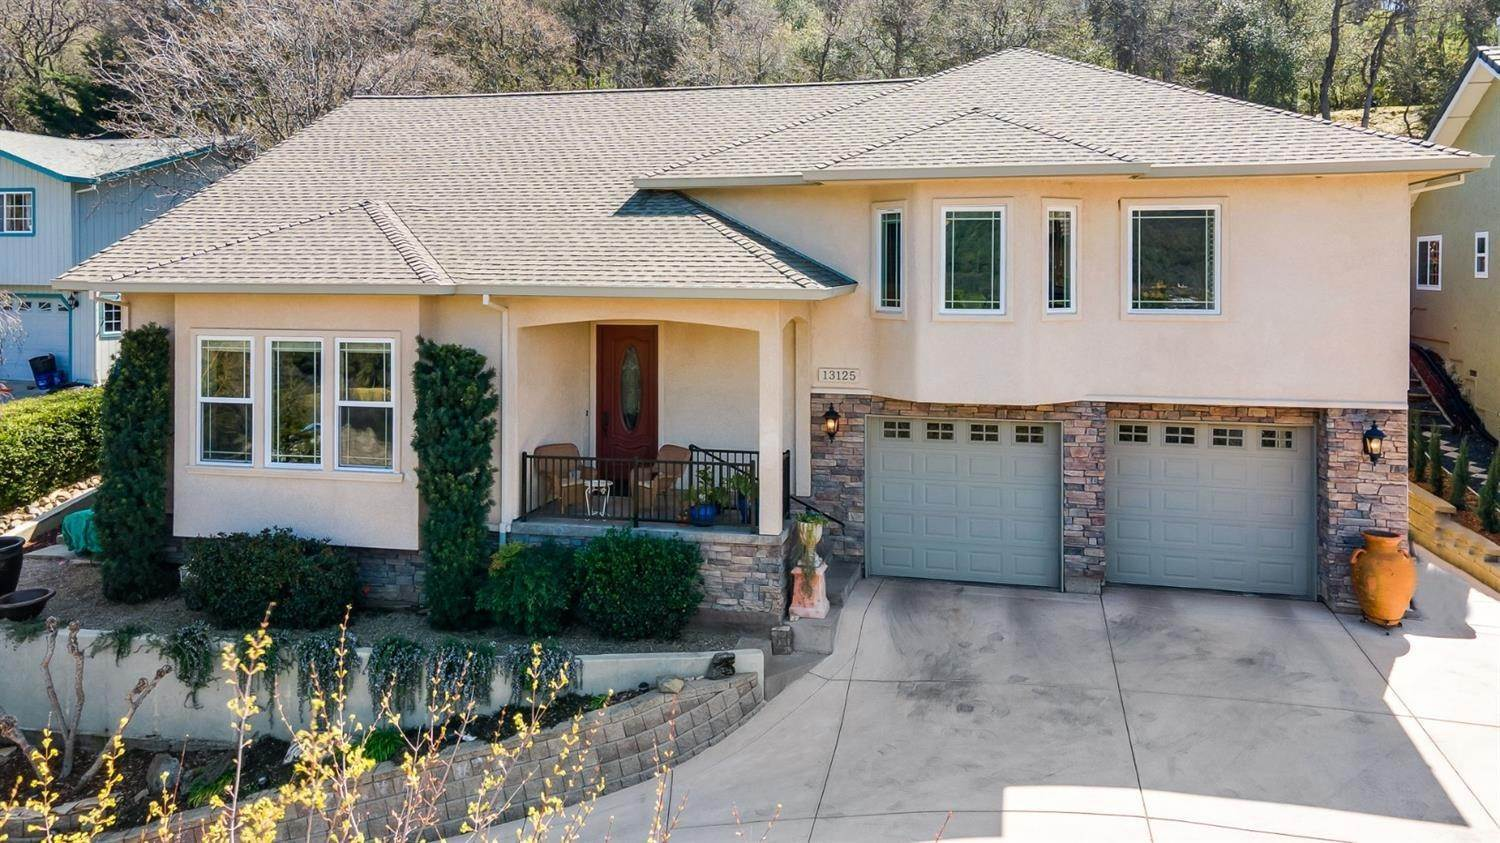 Single Family Homes for Active at 13125 Sylva Lane Sonora, California 95370 United States